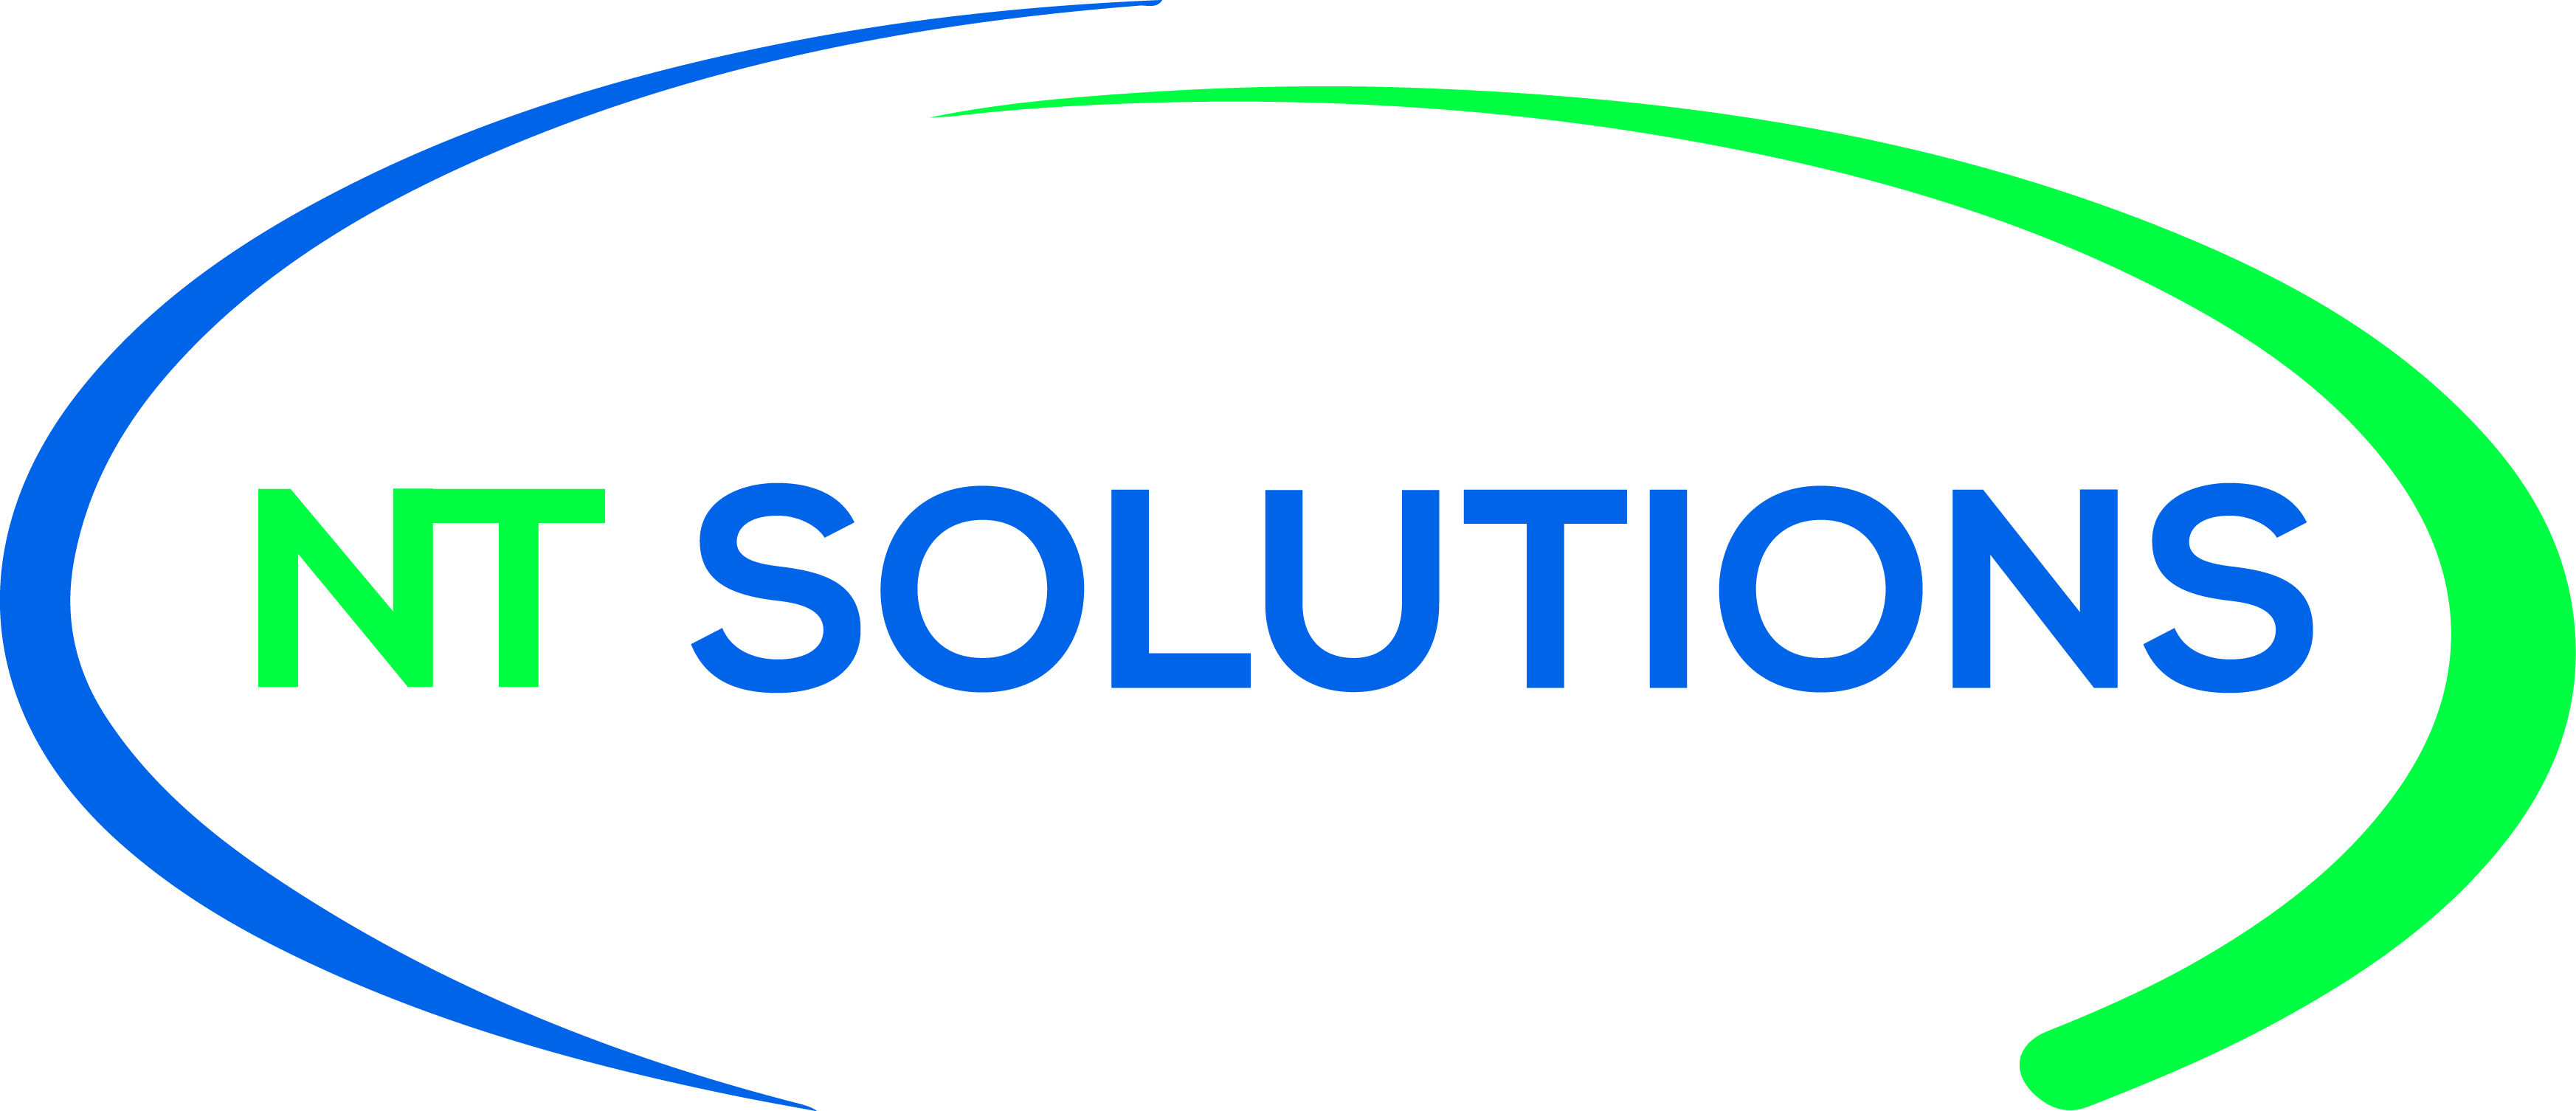 NT SOLUTIONS - Vietnam Medical Devices Distributor